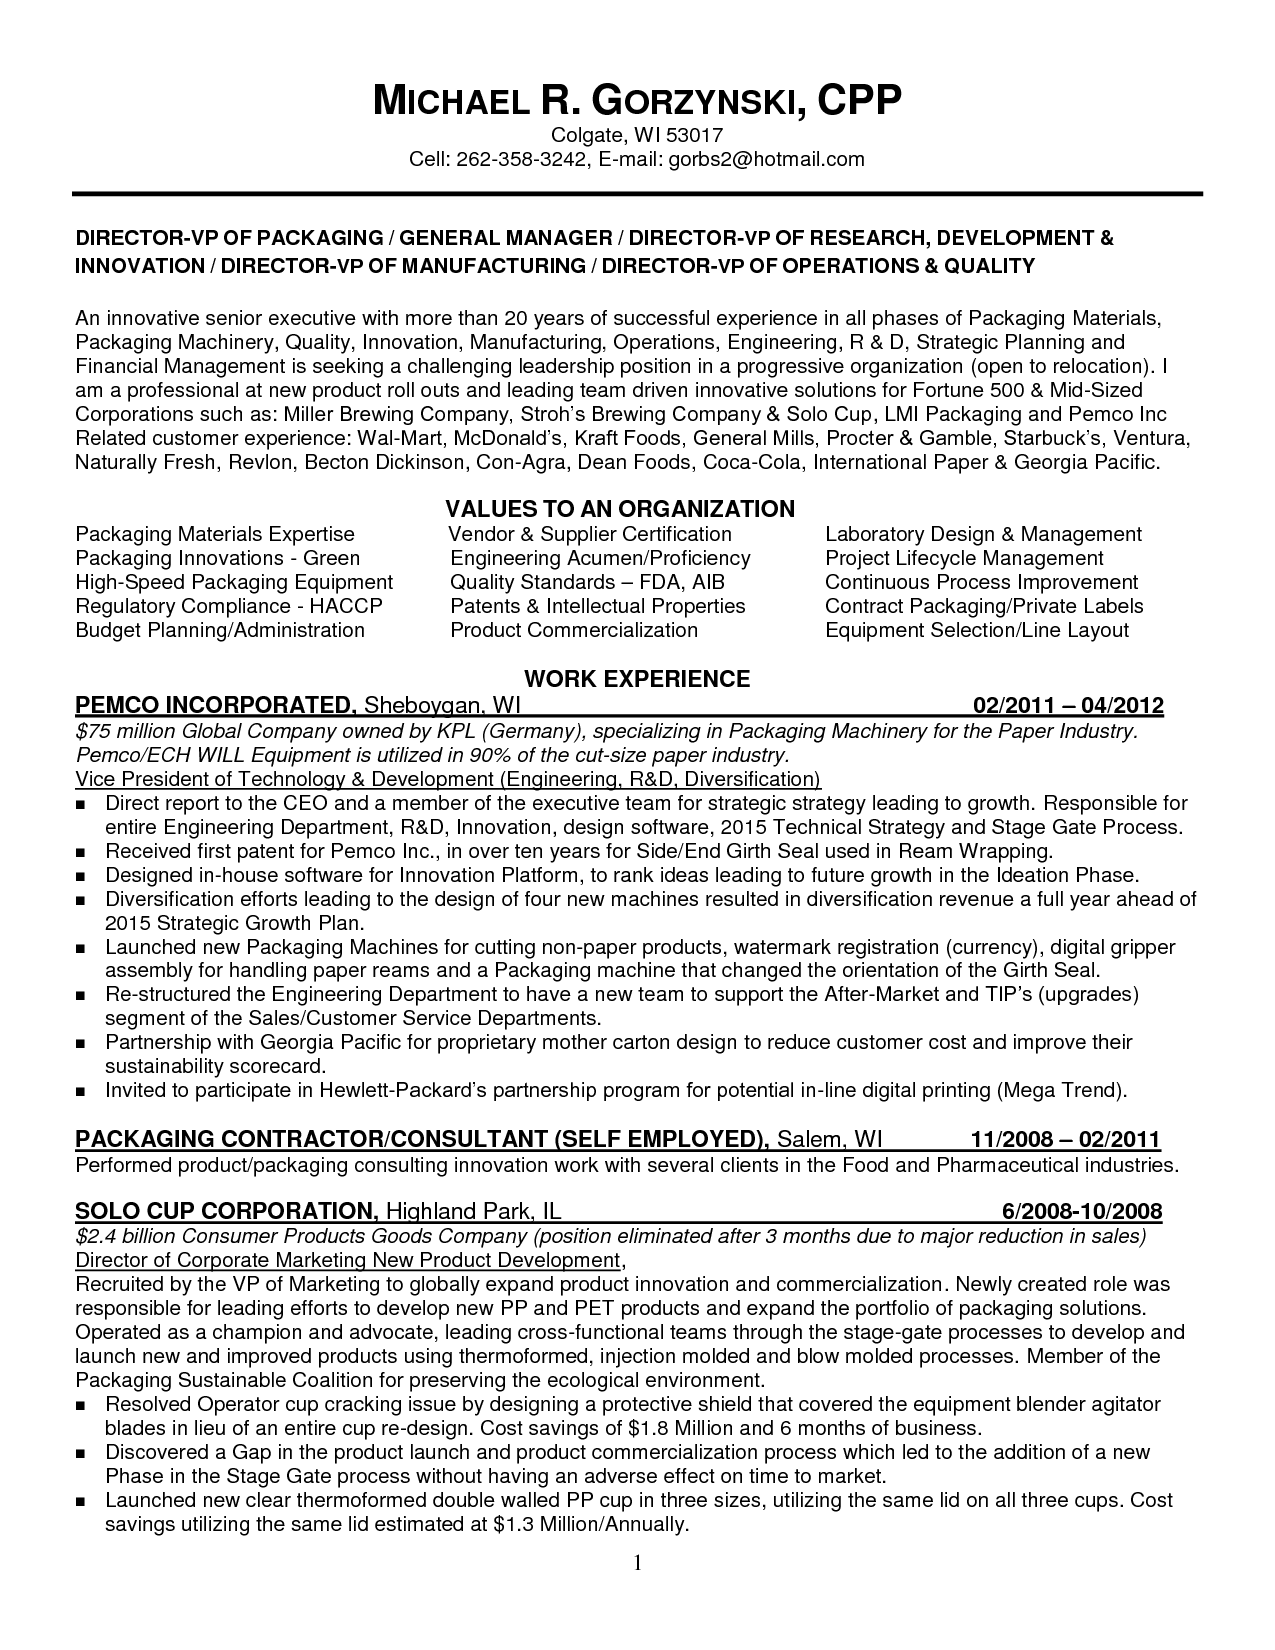 Technician Resume Innovation Engineer Resume  Google Search  Resumes  Pinterest